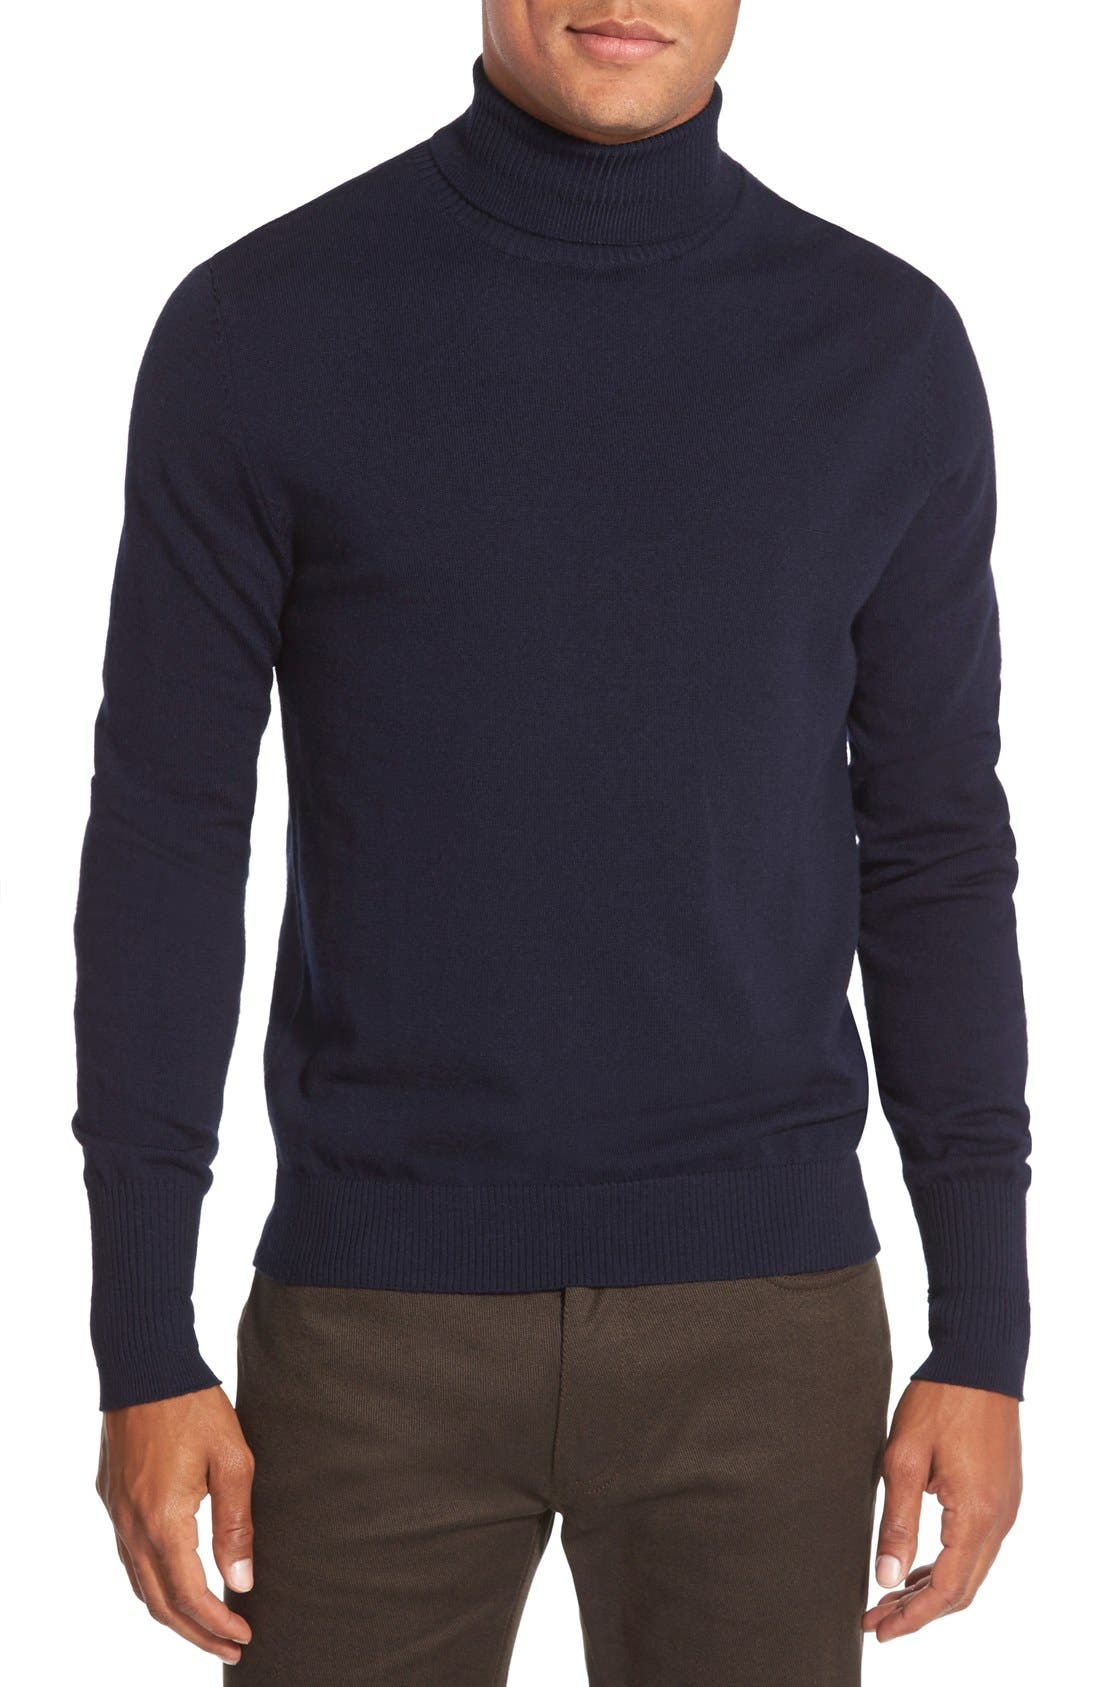 Main Image - Vince Camuto Merino Wool Turtleneck